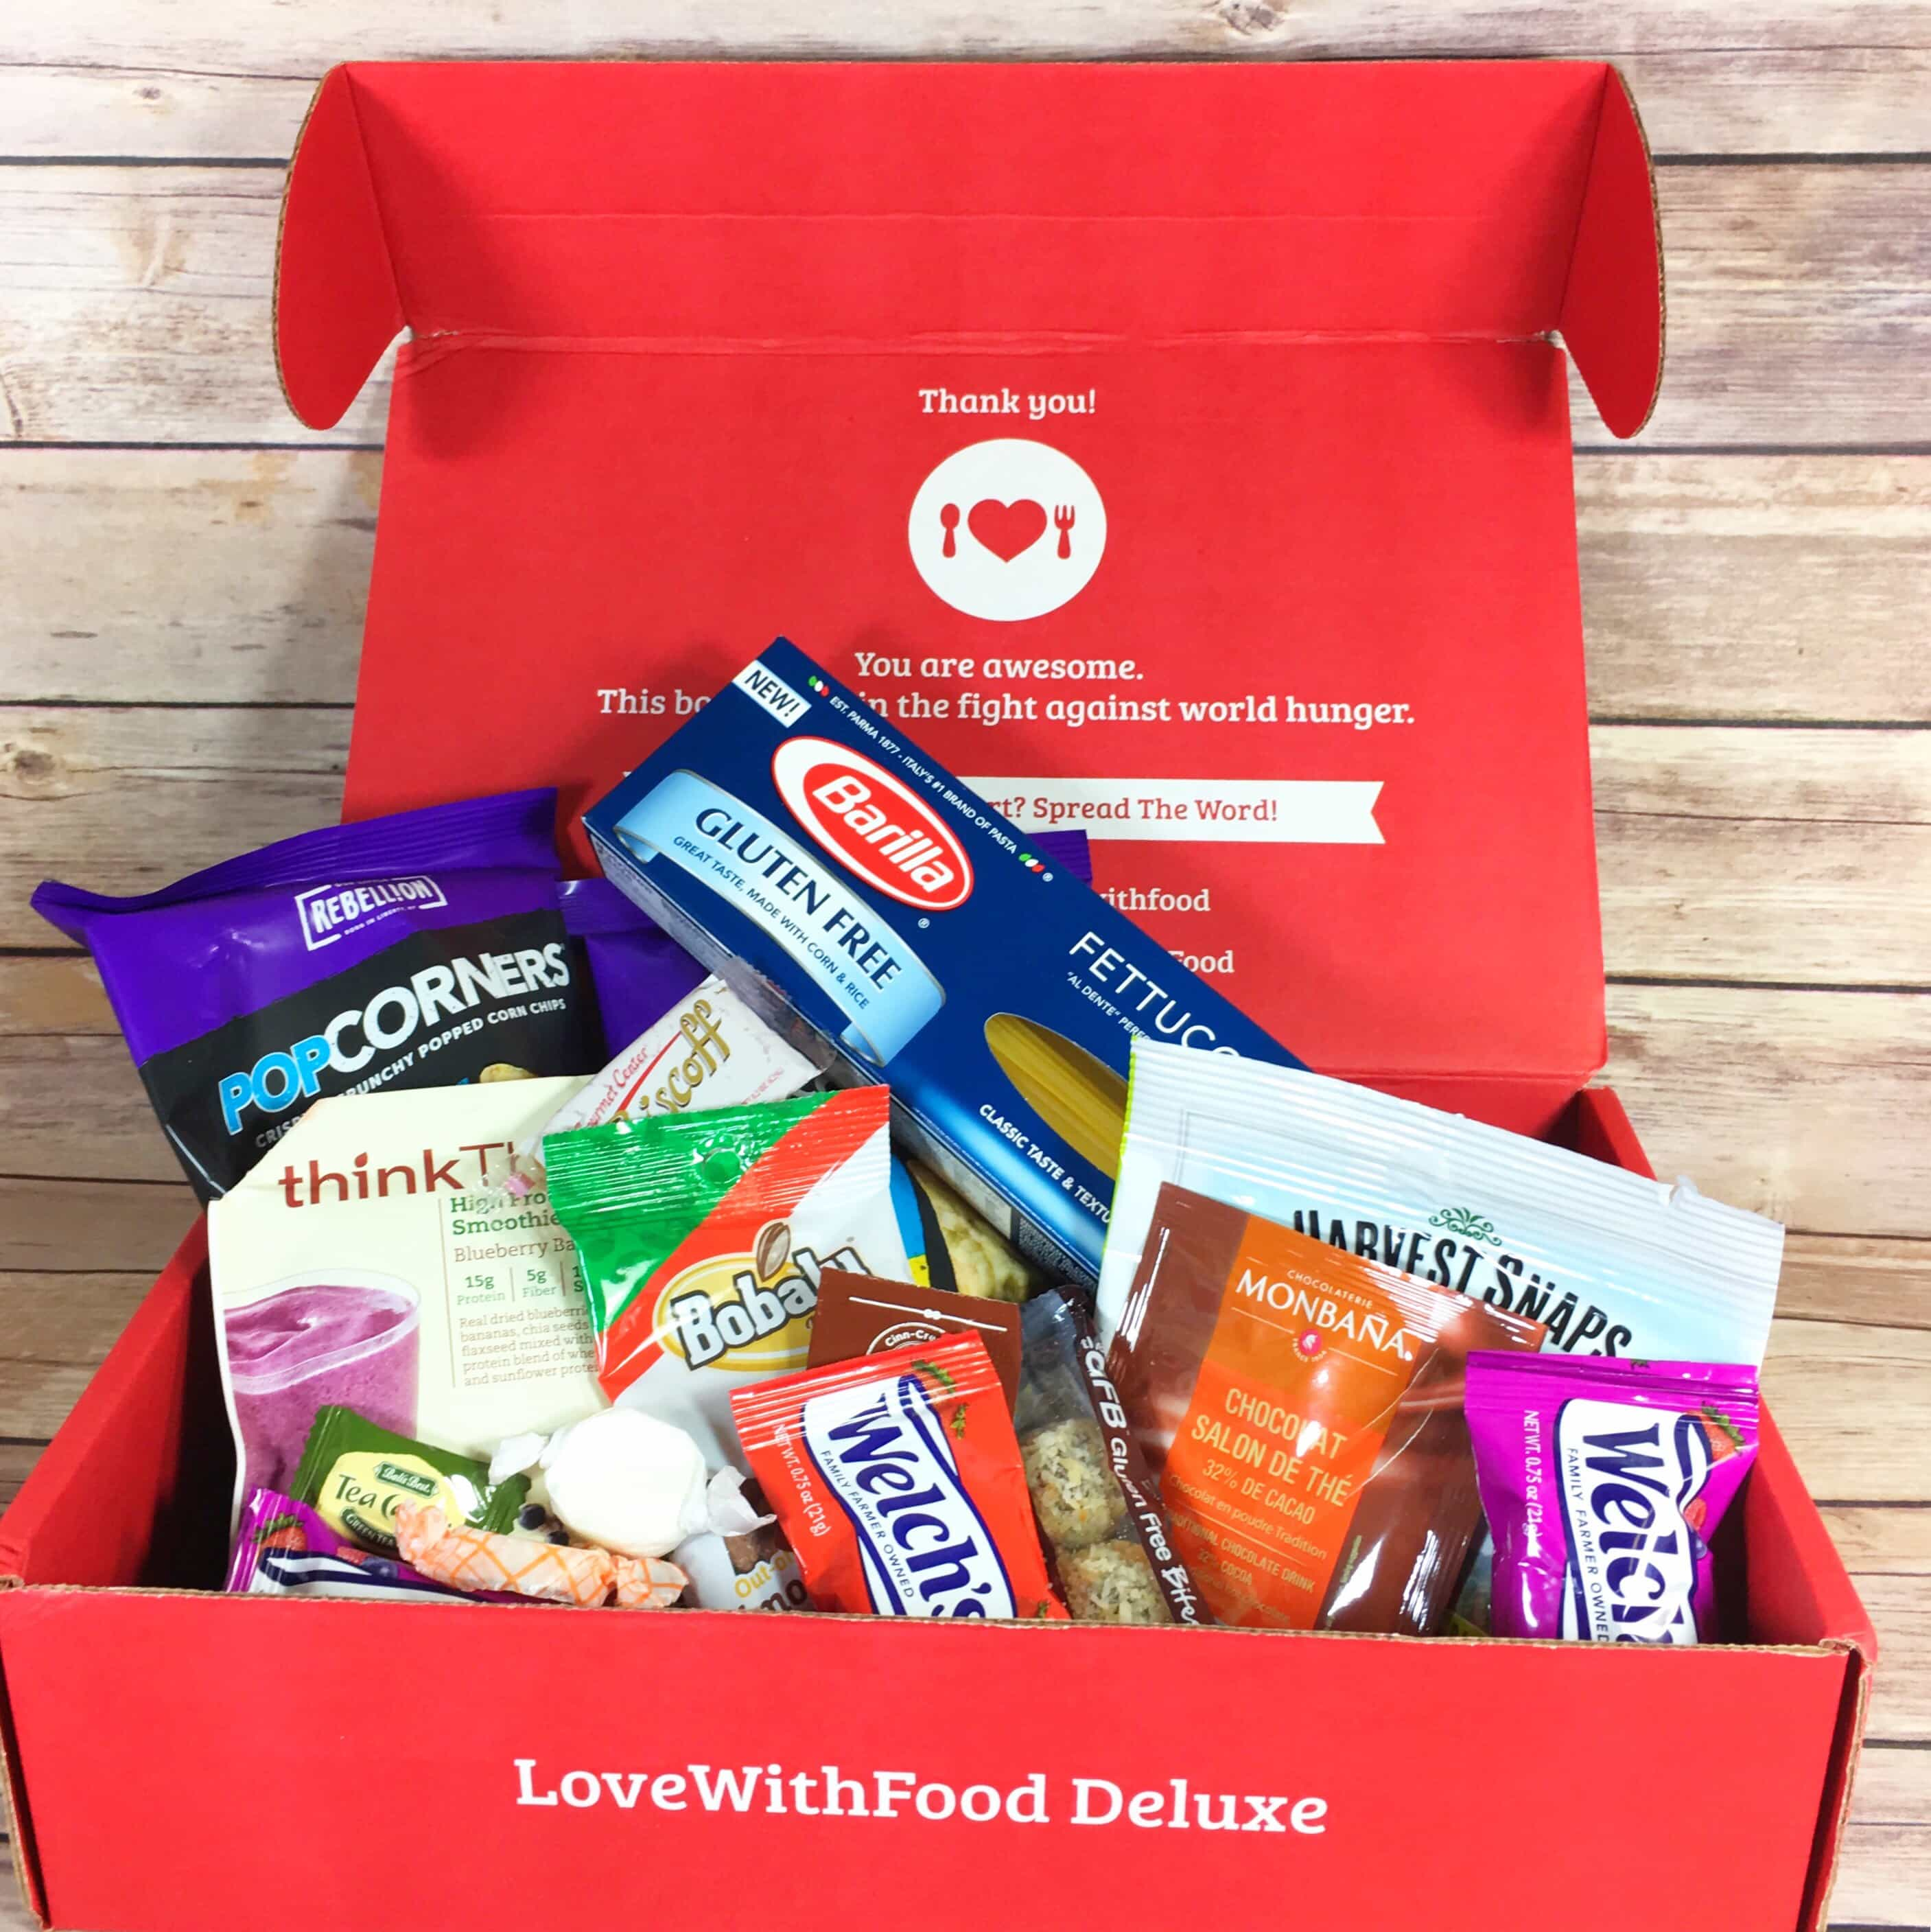 Love With Food September 2017 Deluxe Box Review + Coupon